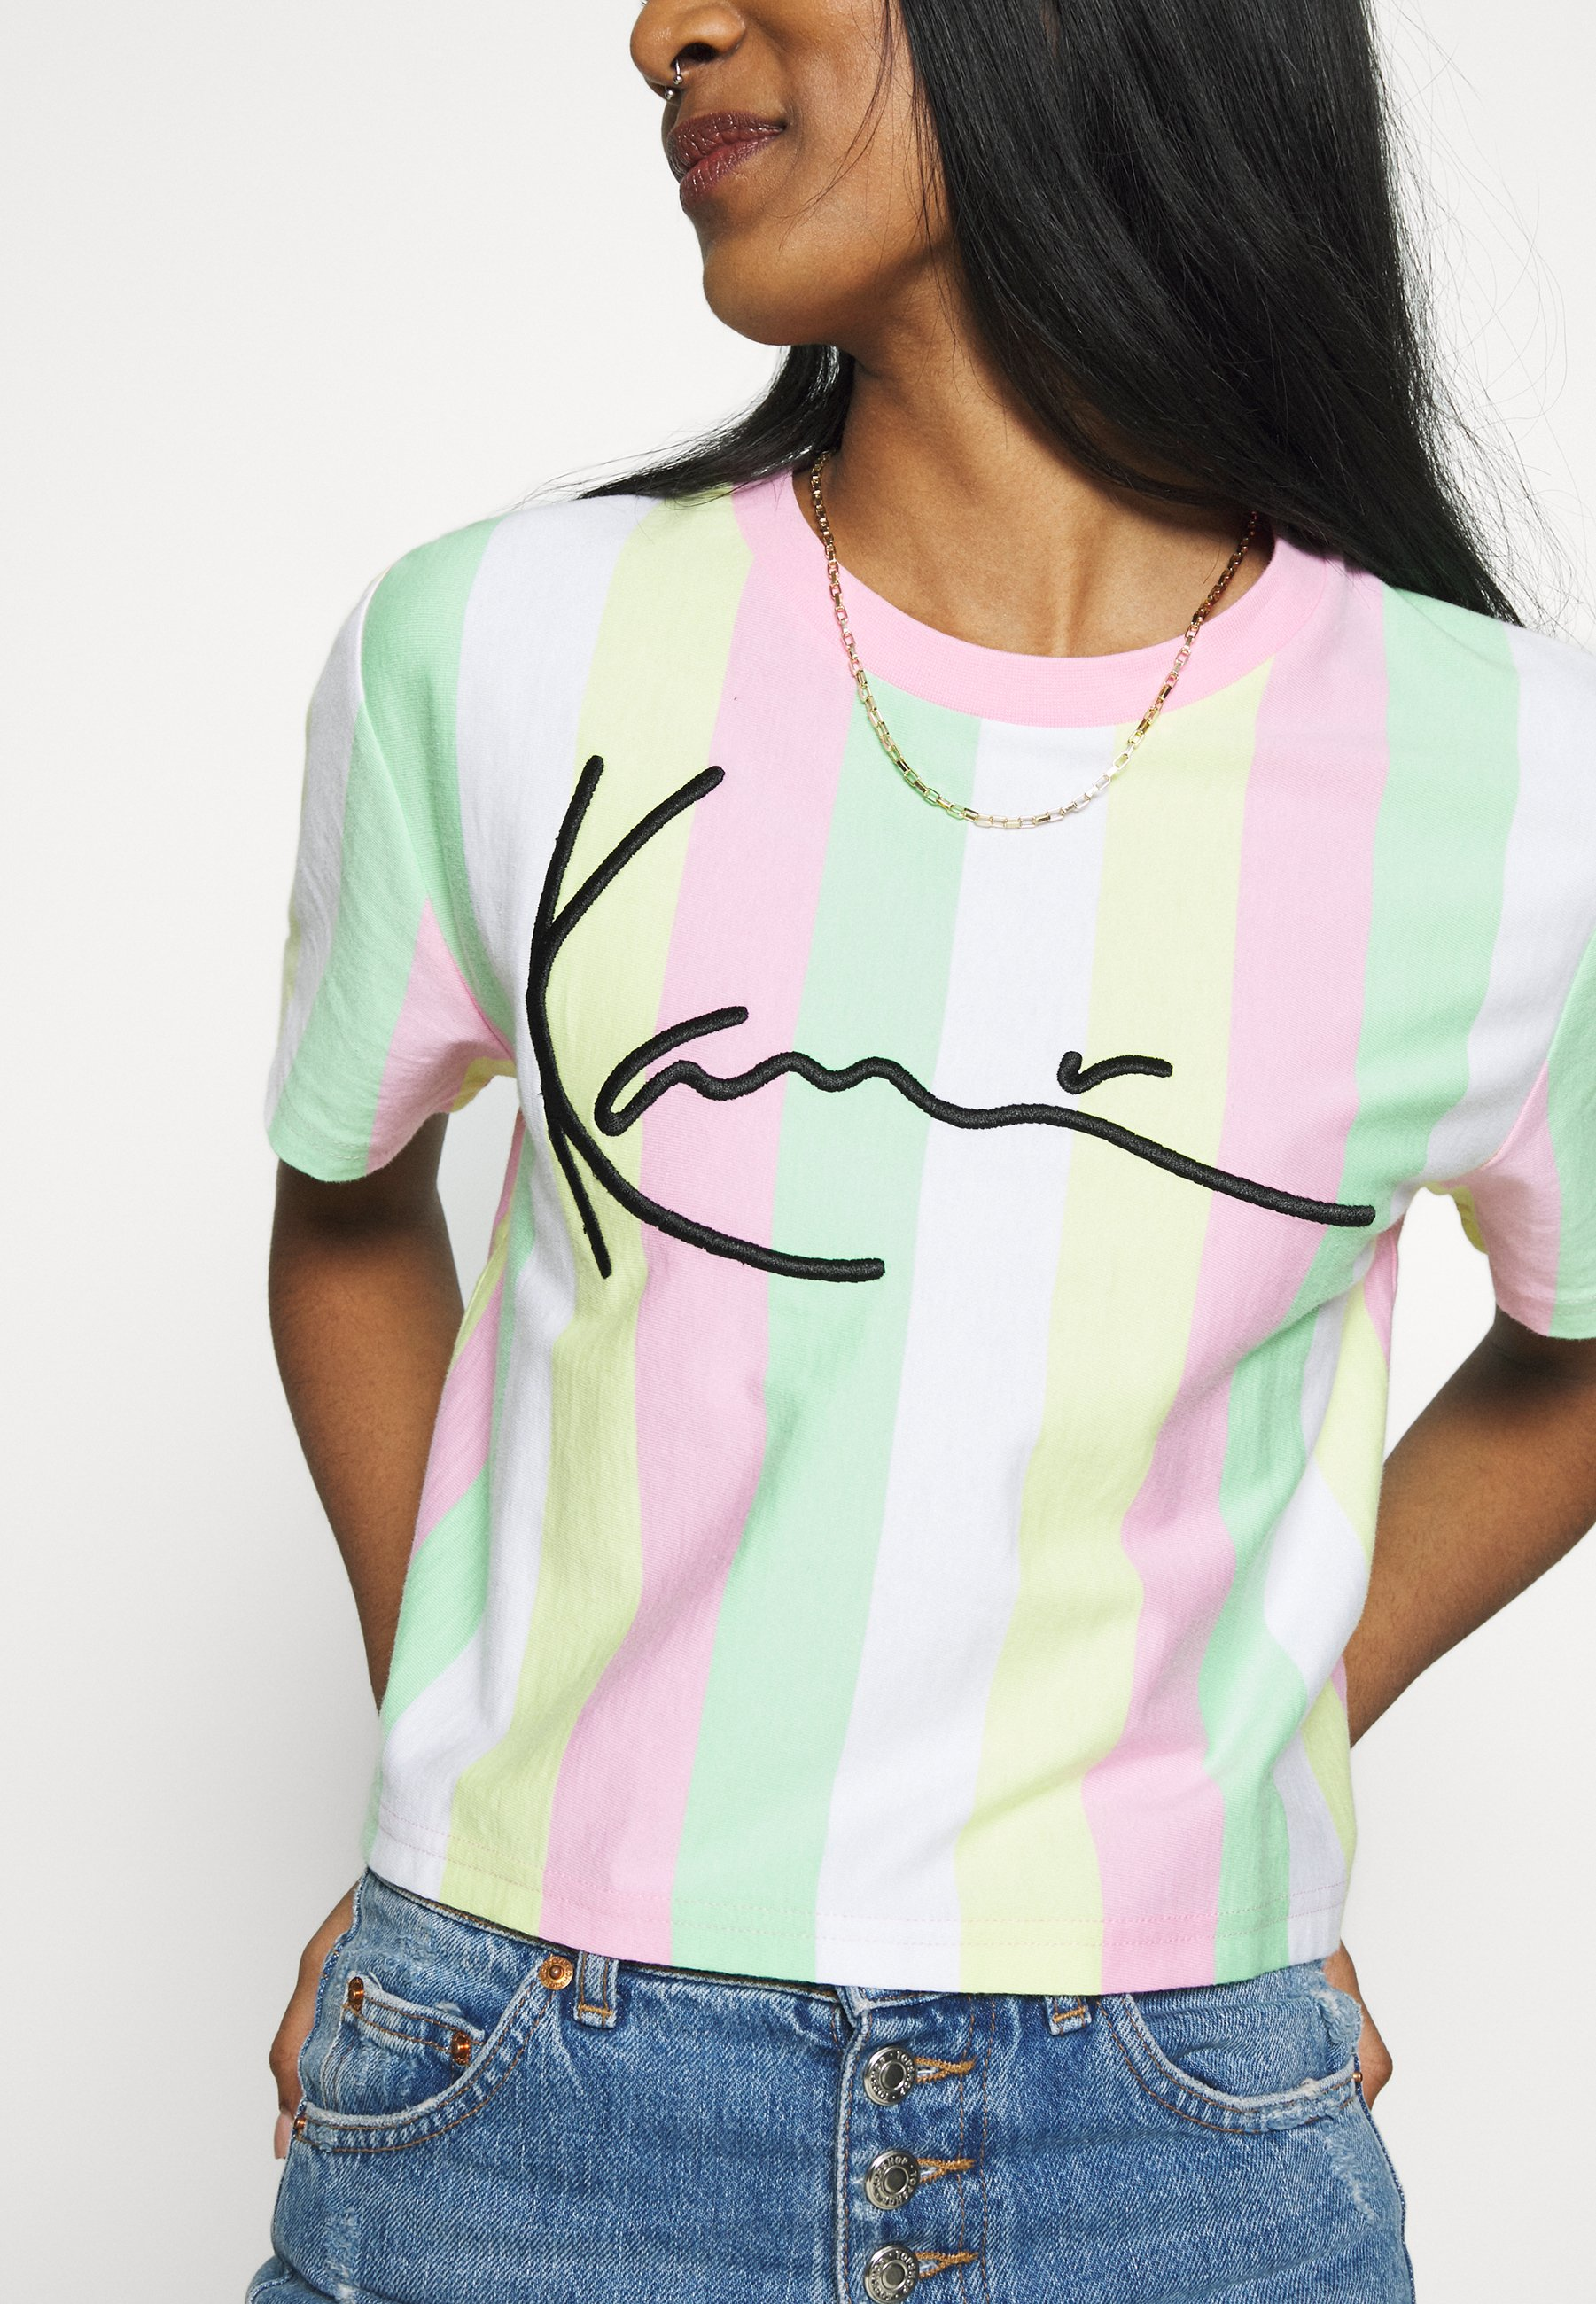 Karl Kani Signature Stripe Tee - T-shirts Med Print Green/white/pink/yellow/flerfarget